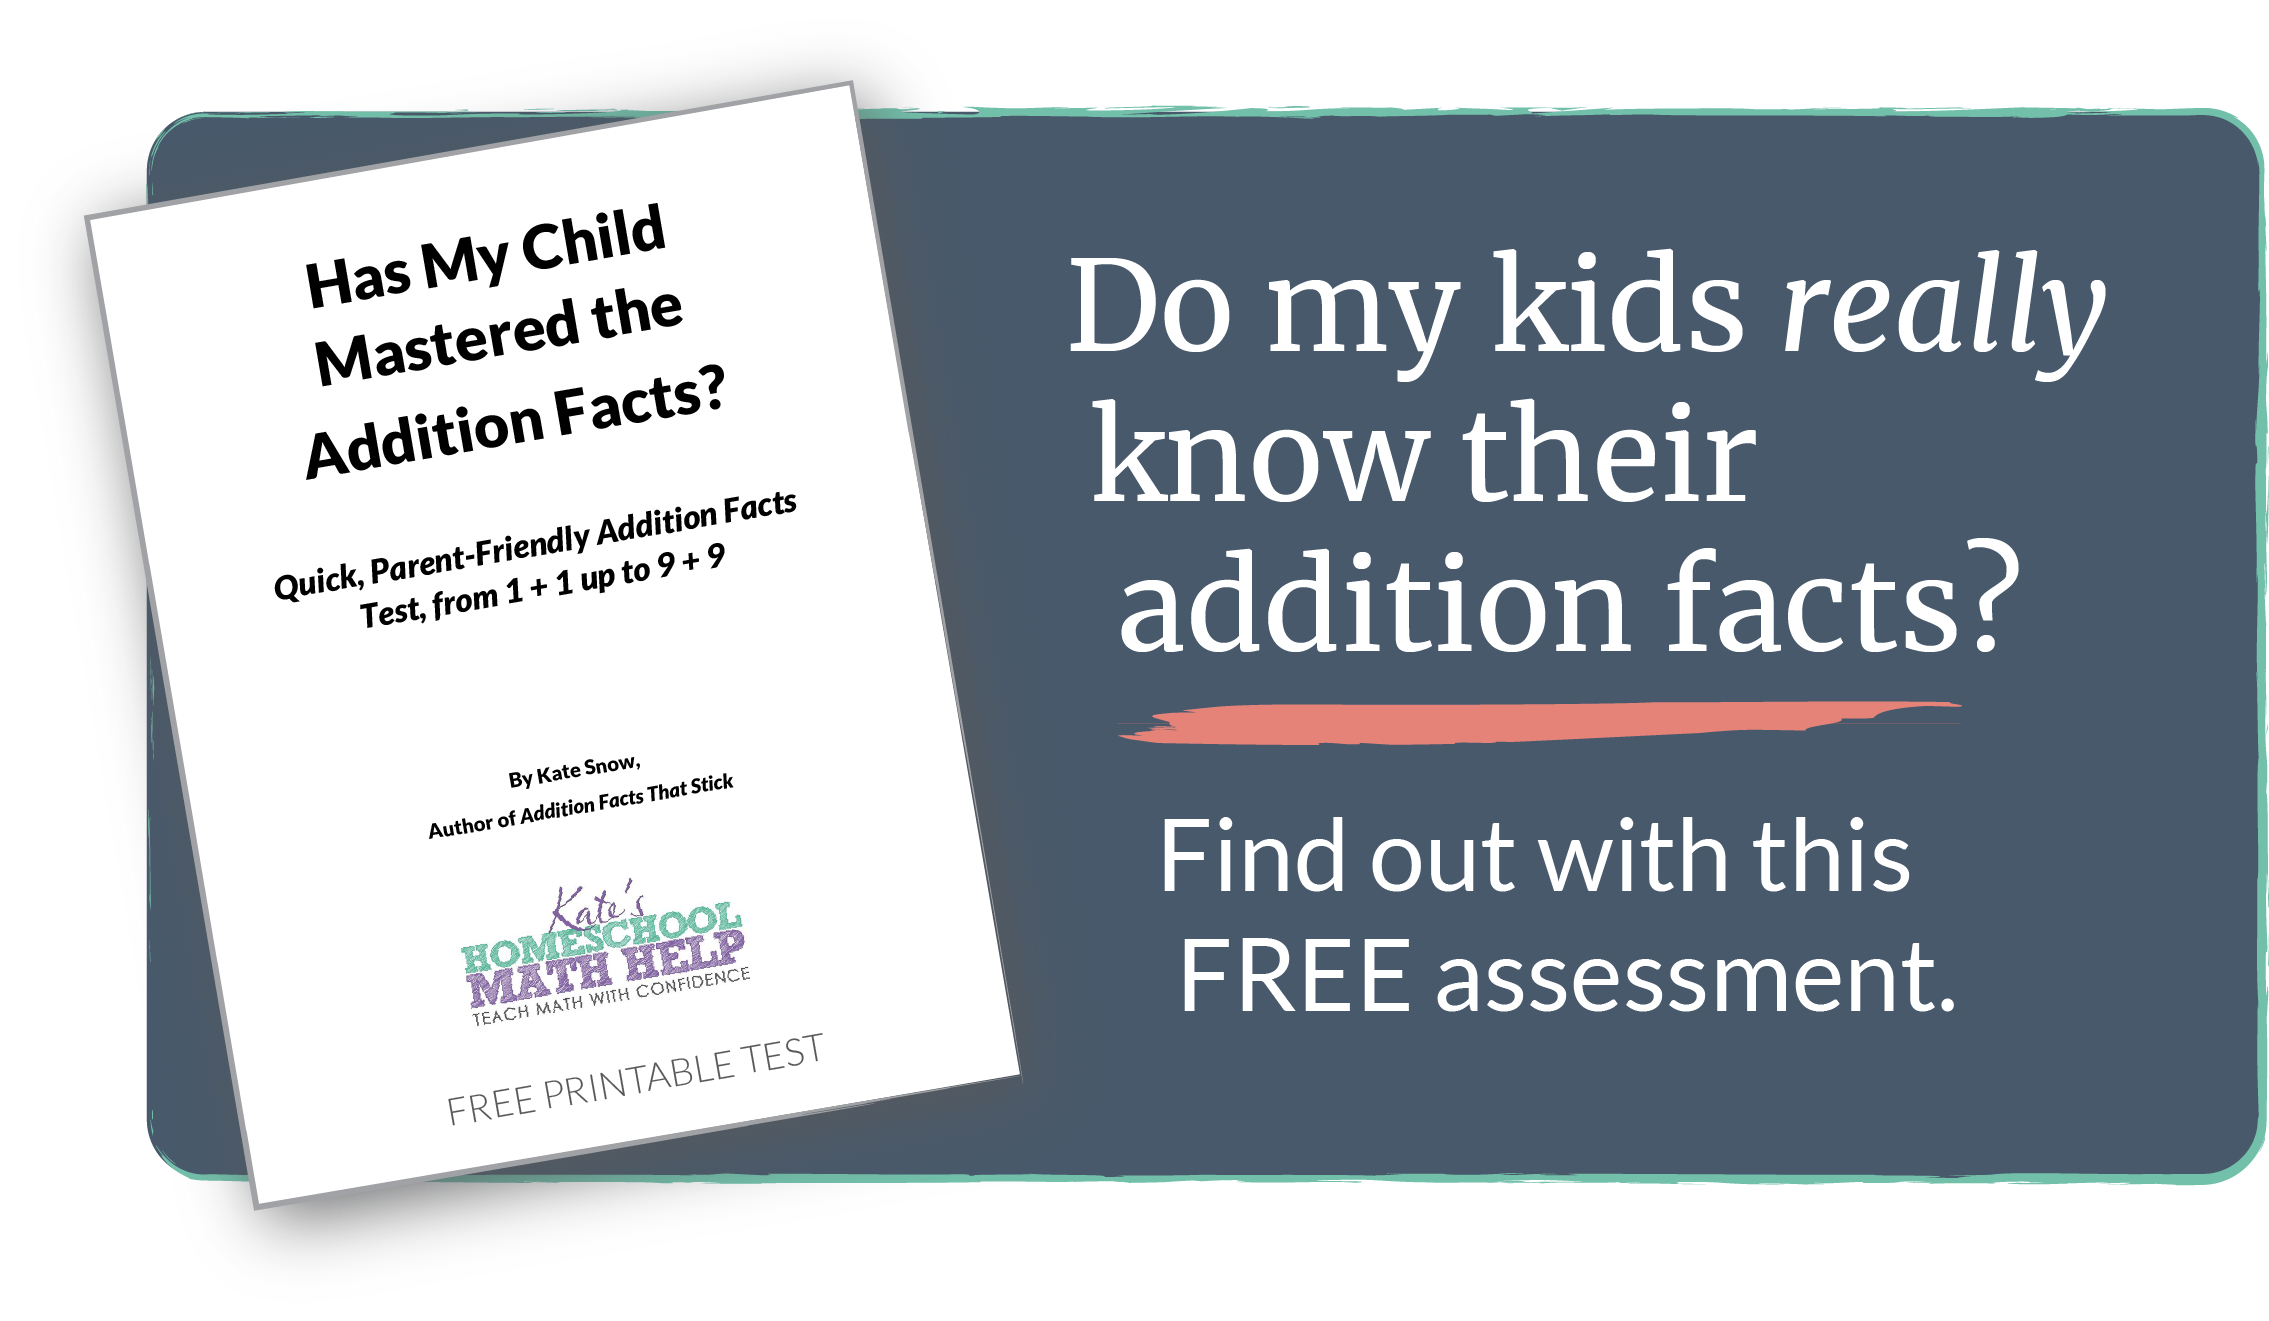 Quick, Parent-Friendly (and Free!) Printable Addition Facts Test